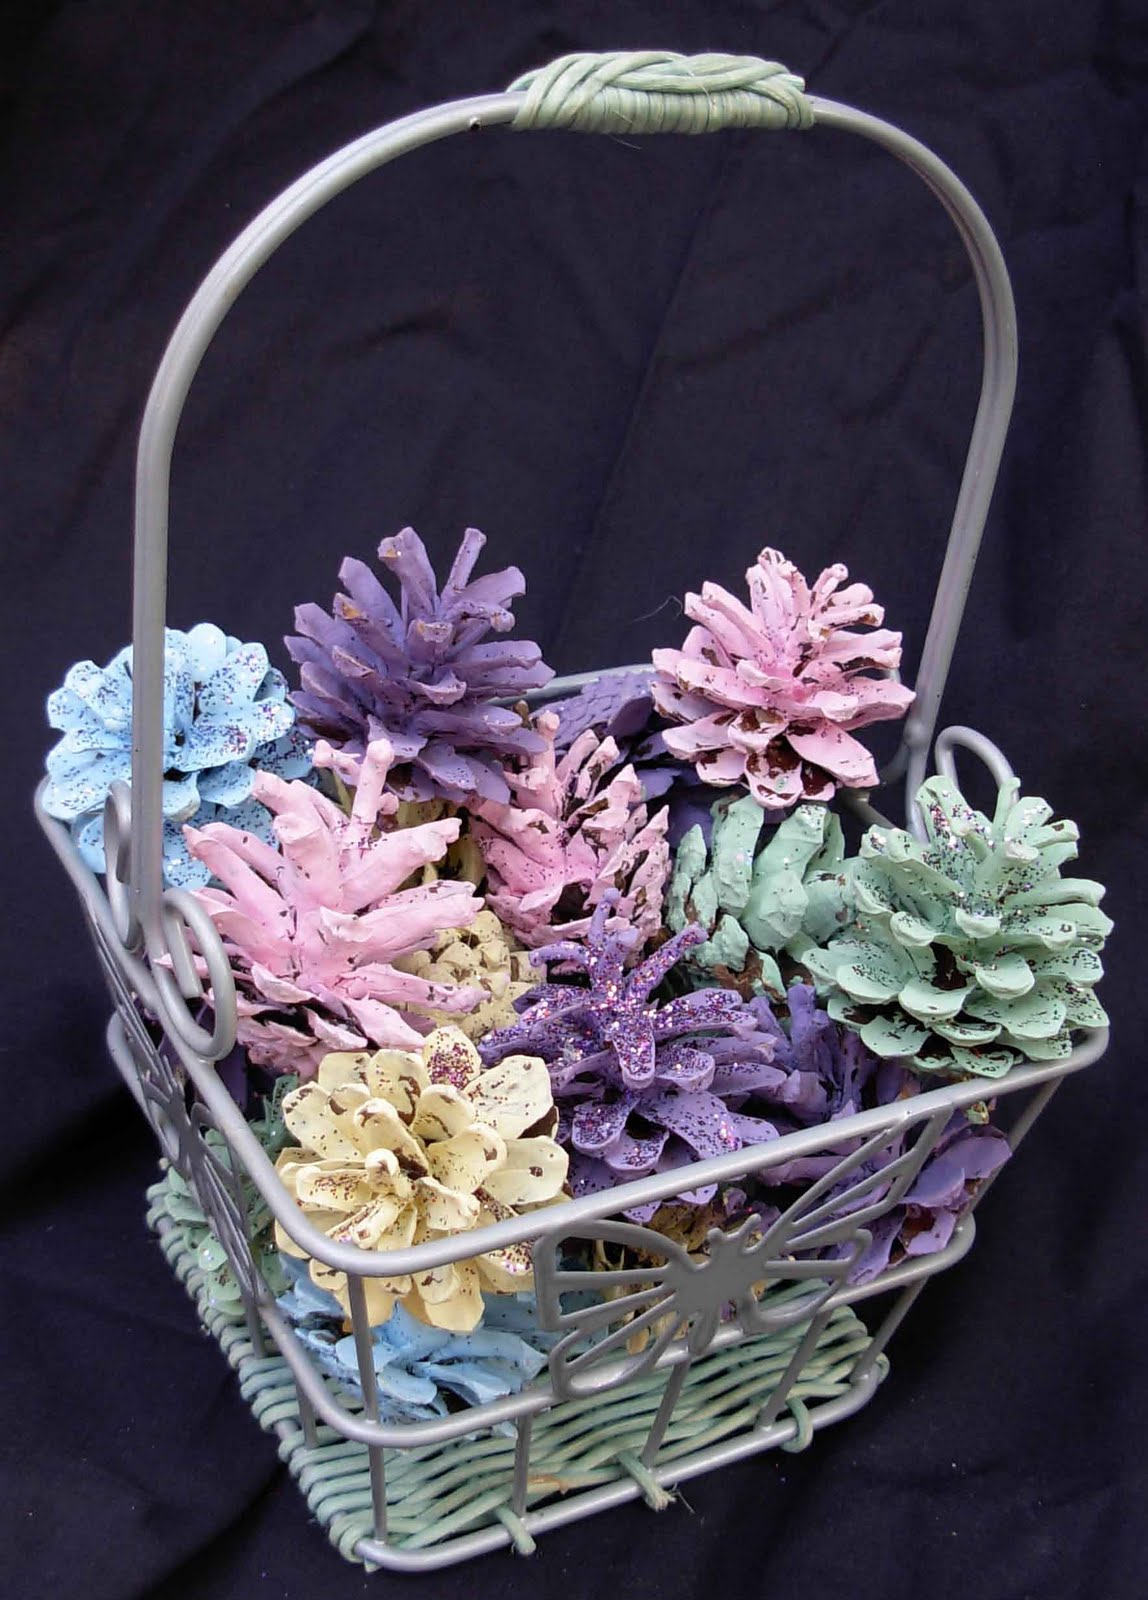 Crack of dawn crafts simple pinecone easter centerpiece